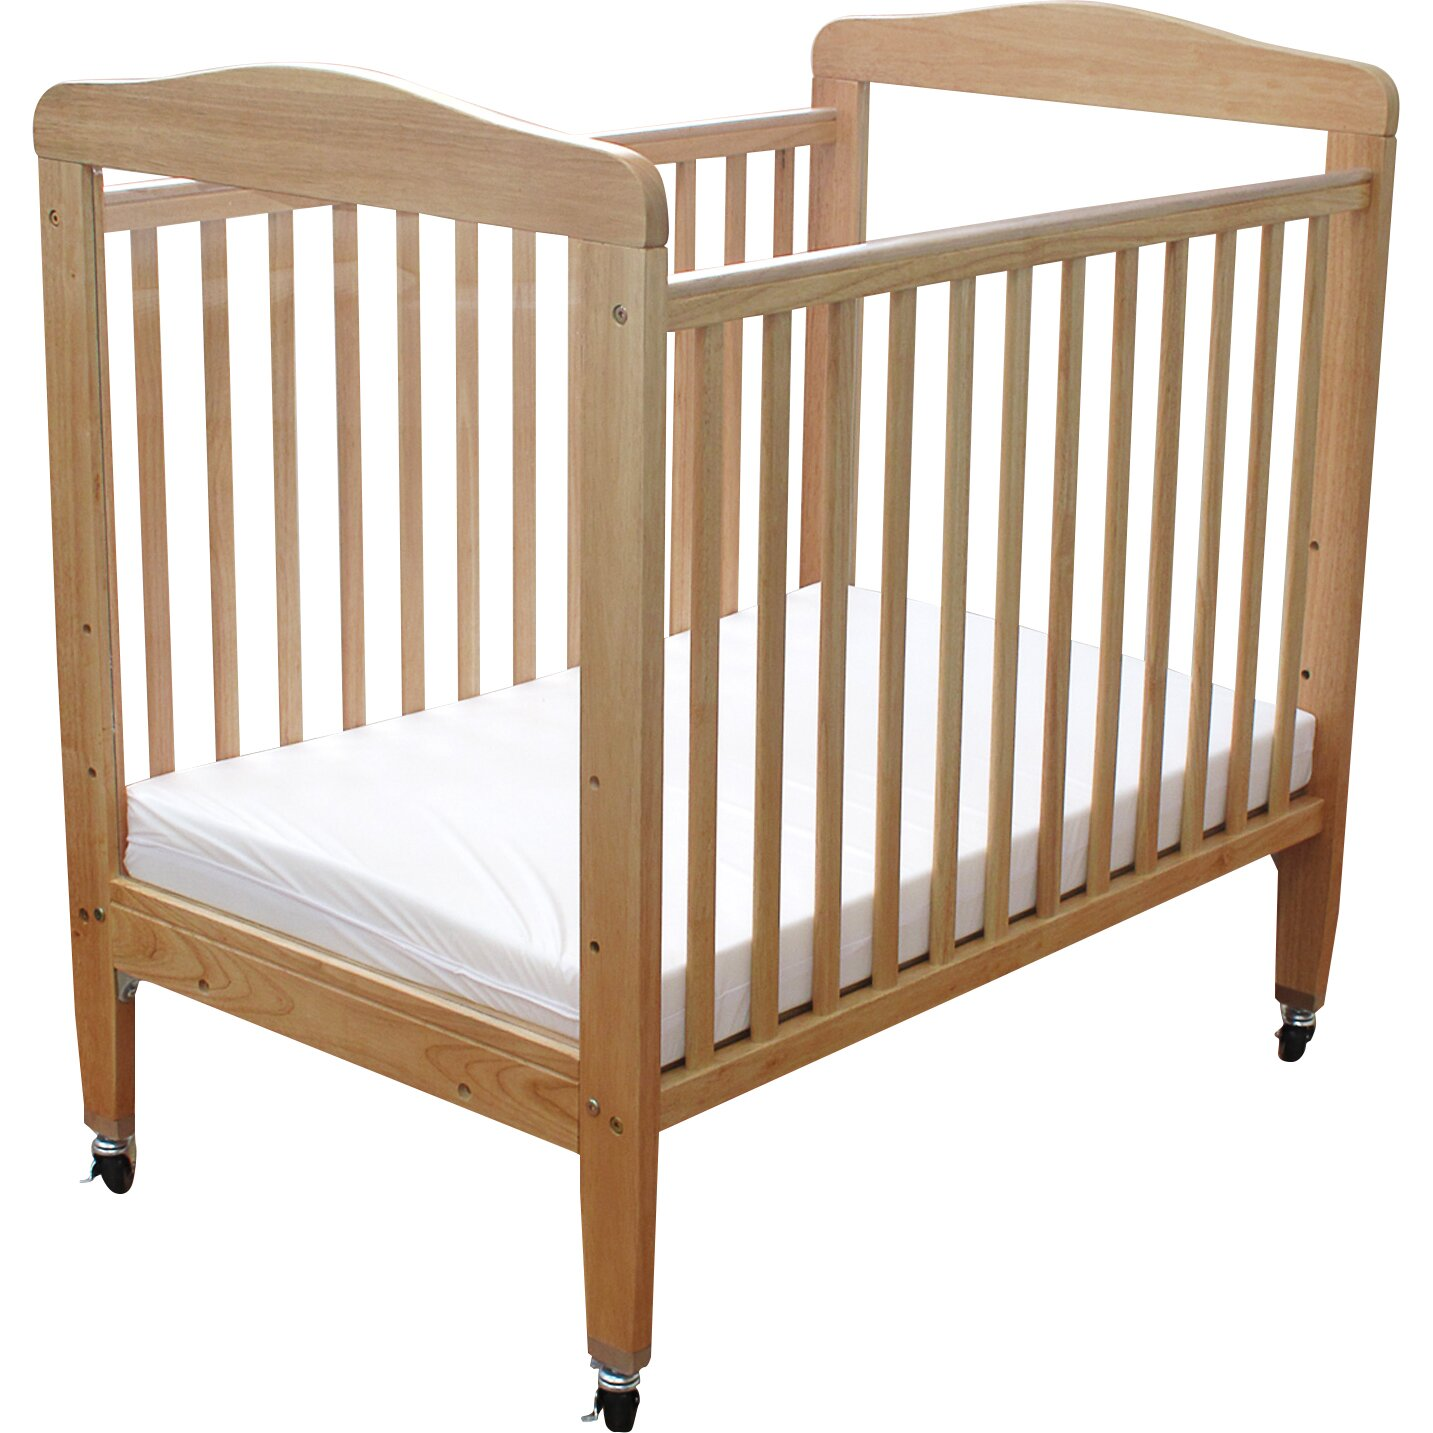 L A Baby pact Wooden Window Convertible Crib with